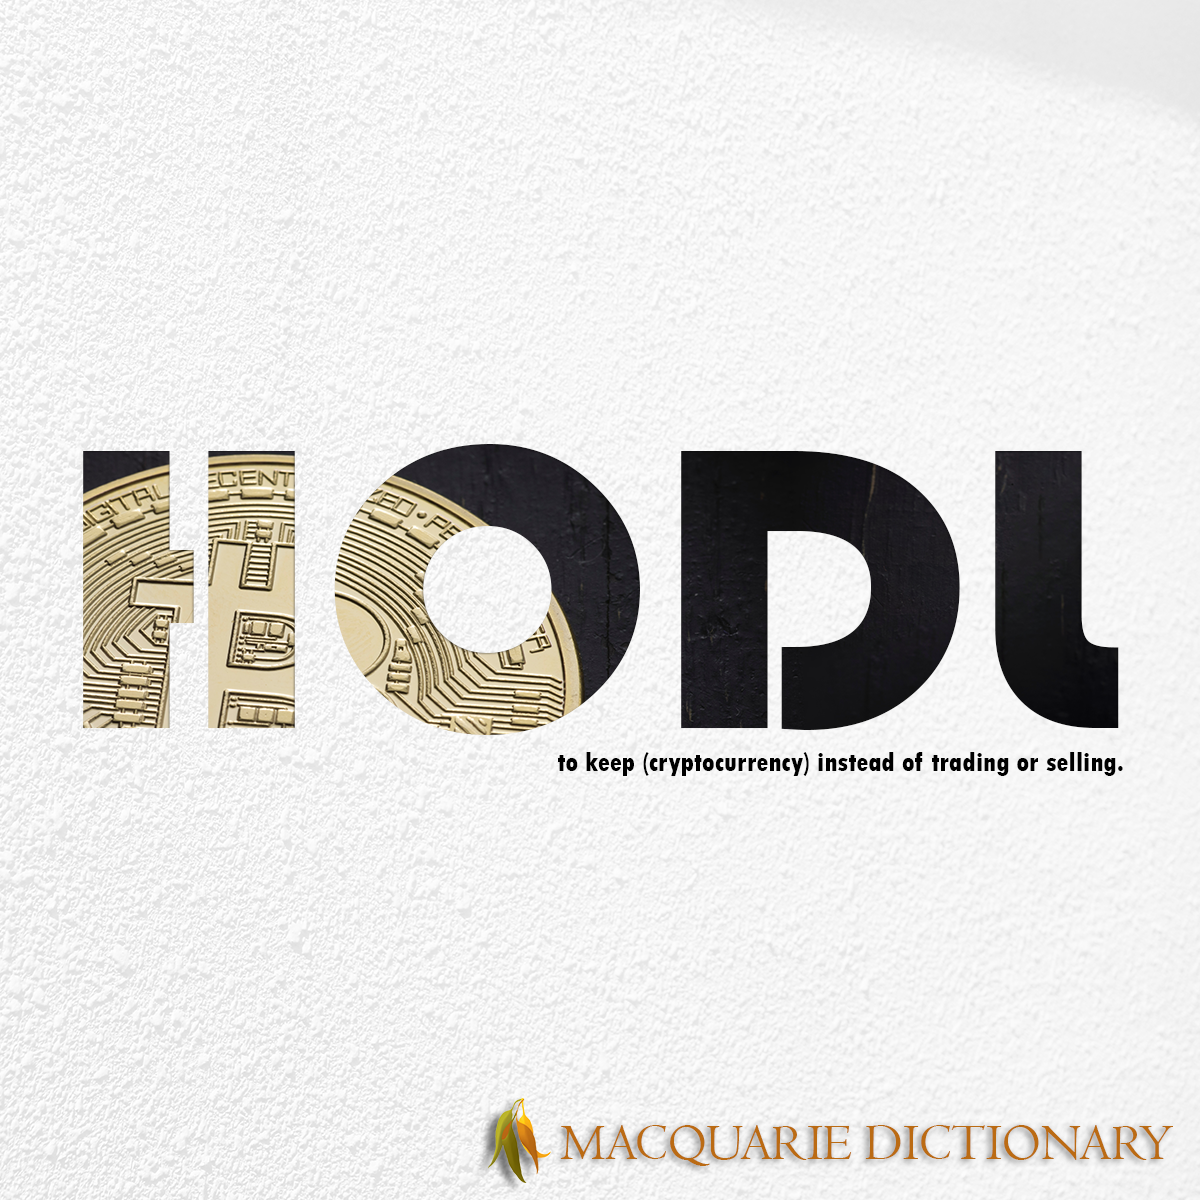 Image of Macquarie Dictionary Word of the Year - HODL - to keep (cryptocurrency) instead of trading or selling.